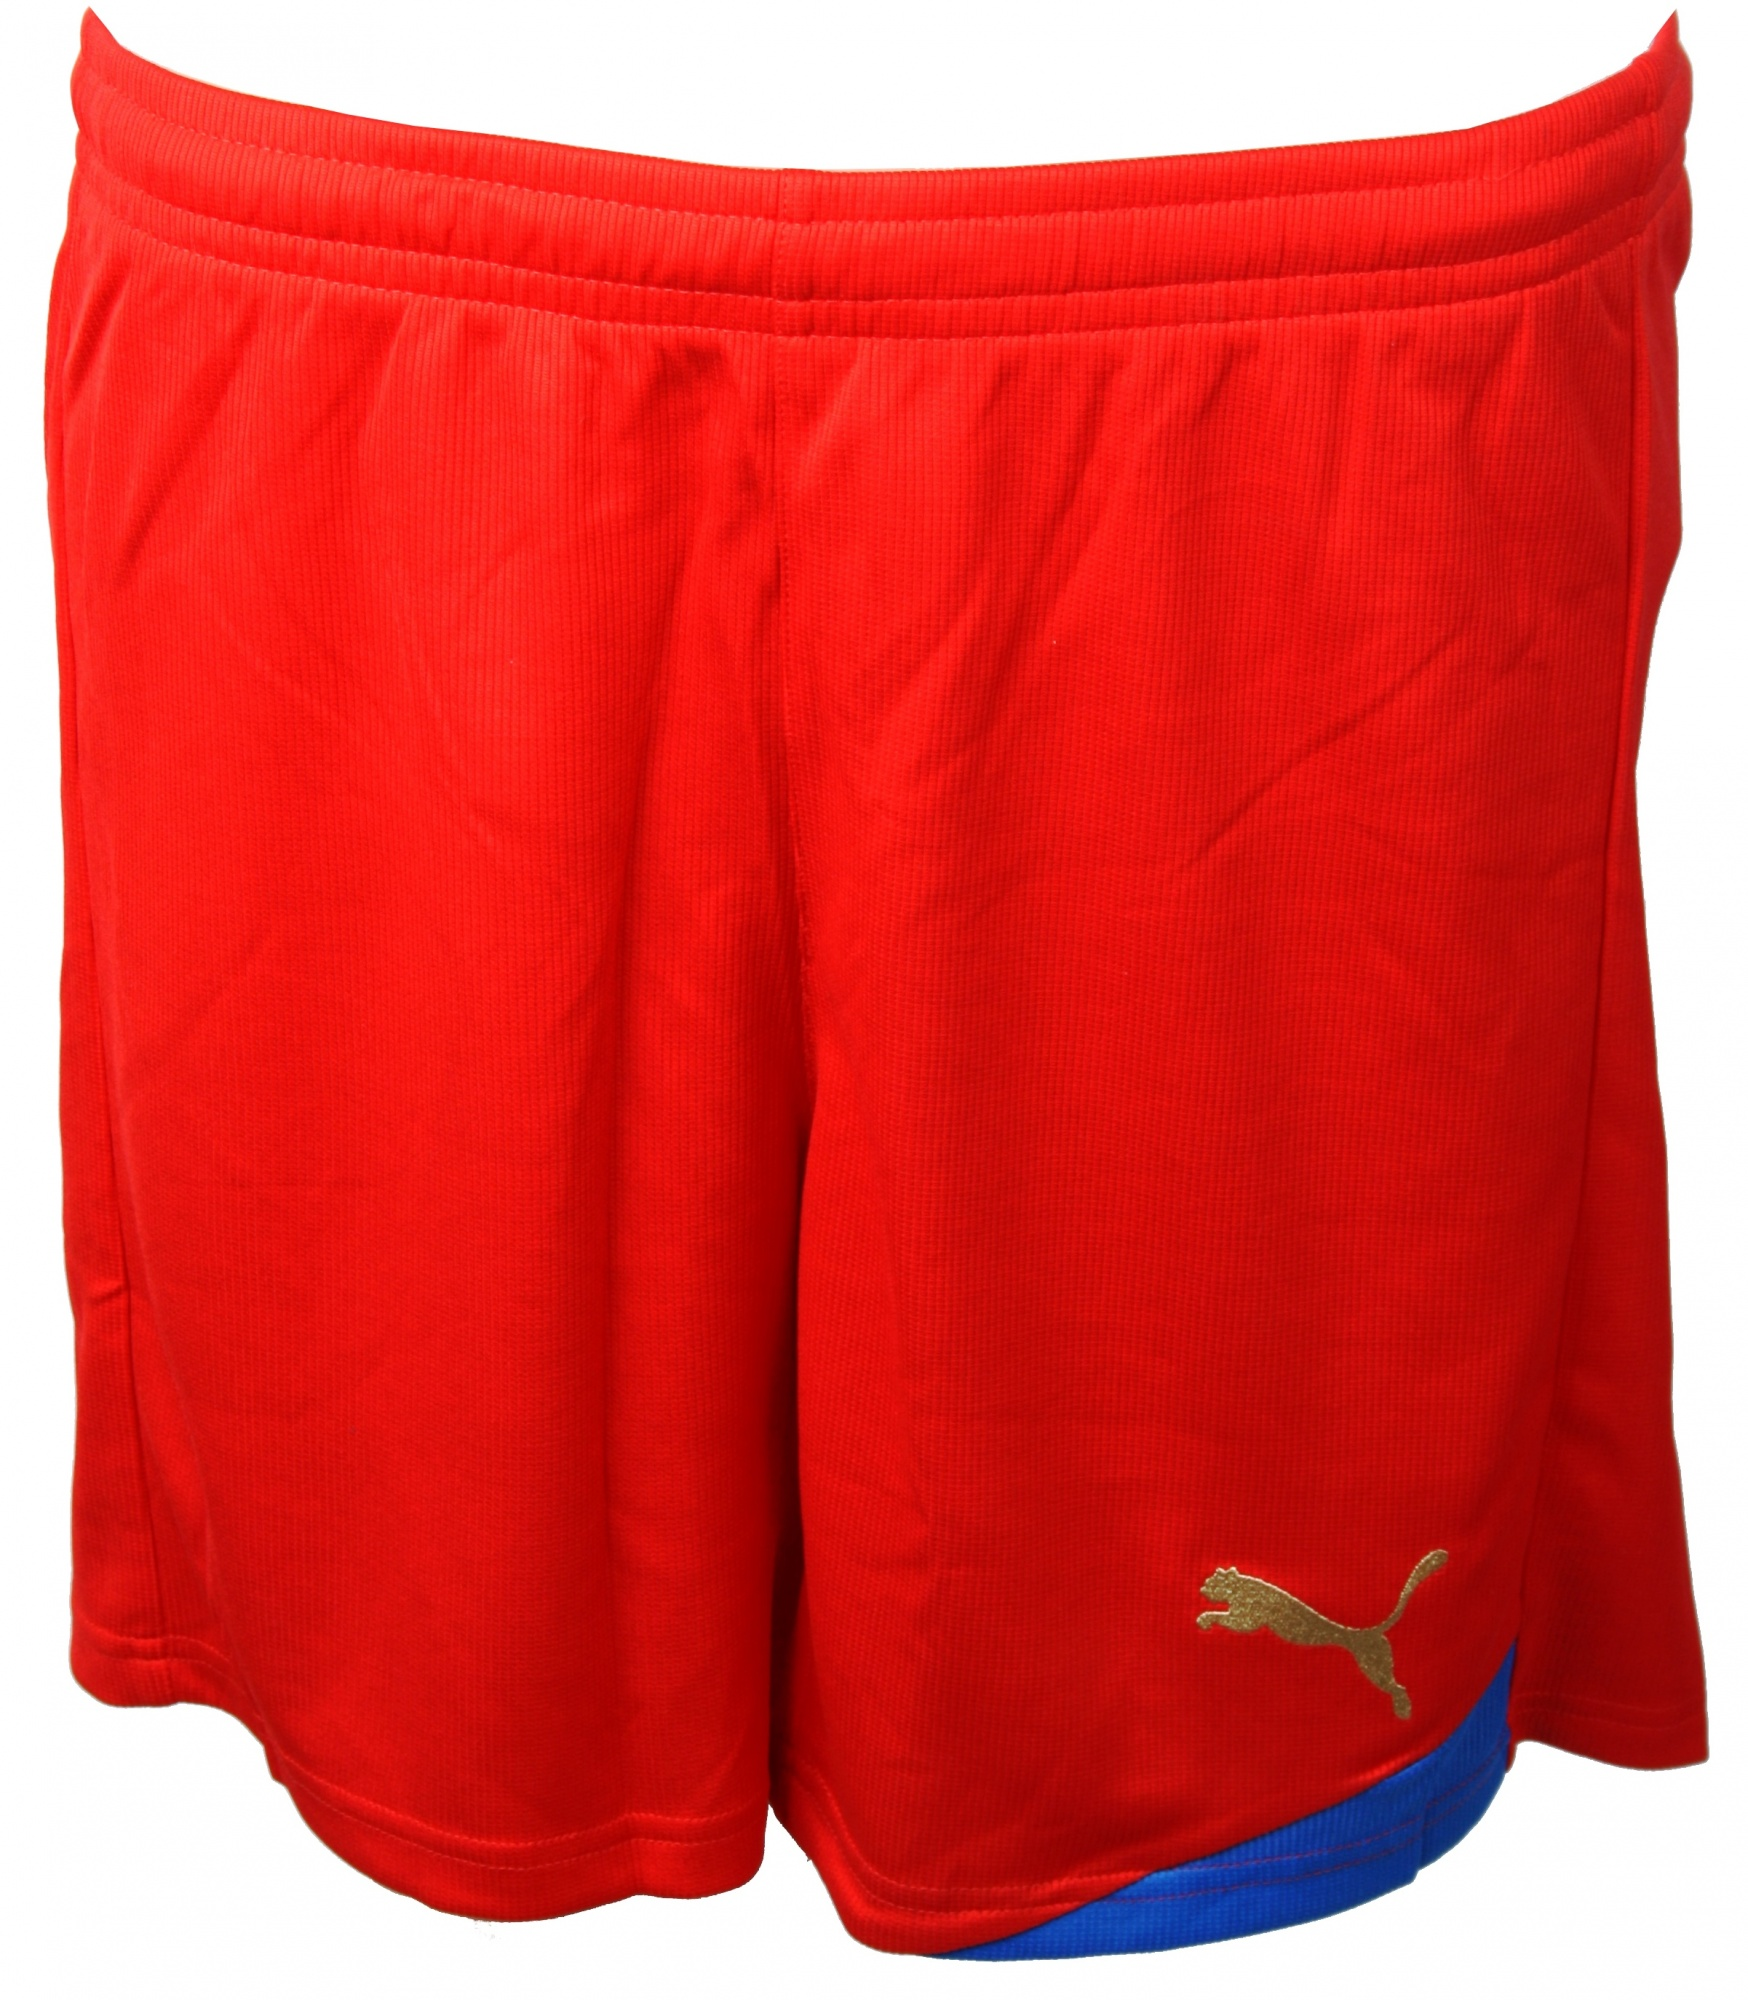 253591011ab2 Puma Esito Short Football Pants Red   Gold - Internet-Sport Casuals